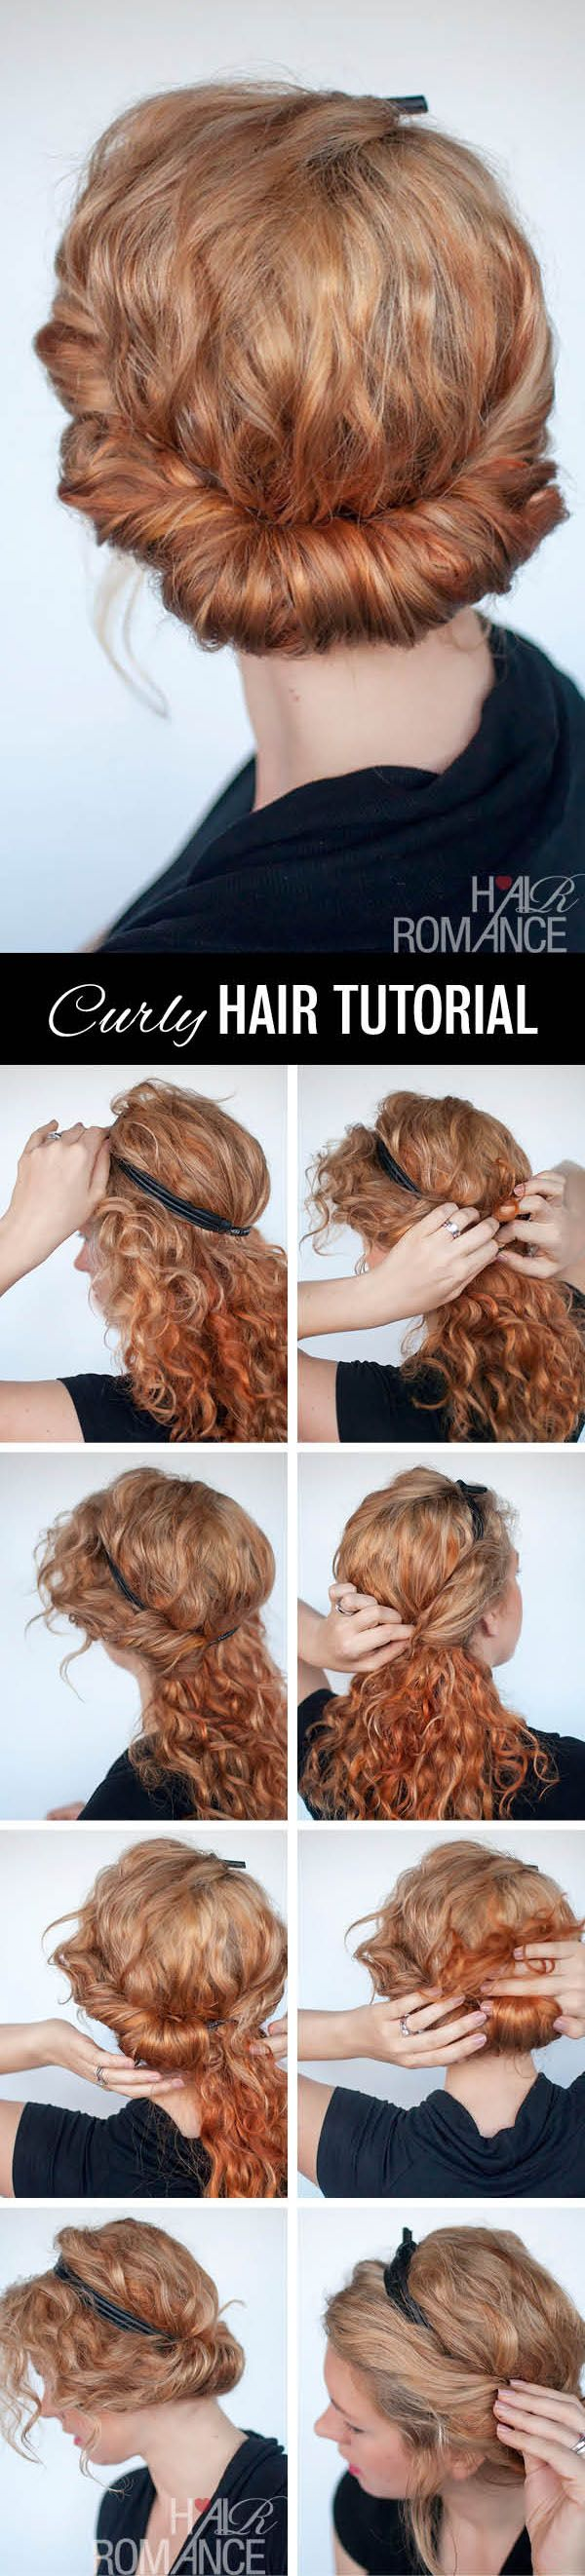 Curly hairstyle tutorial – rolled headband updo